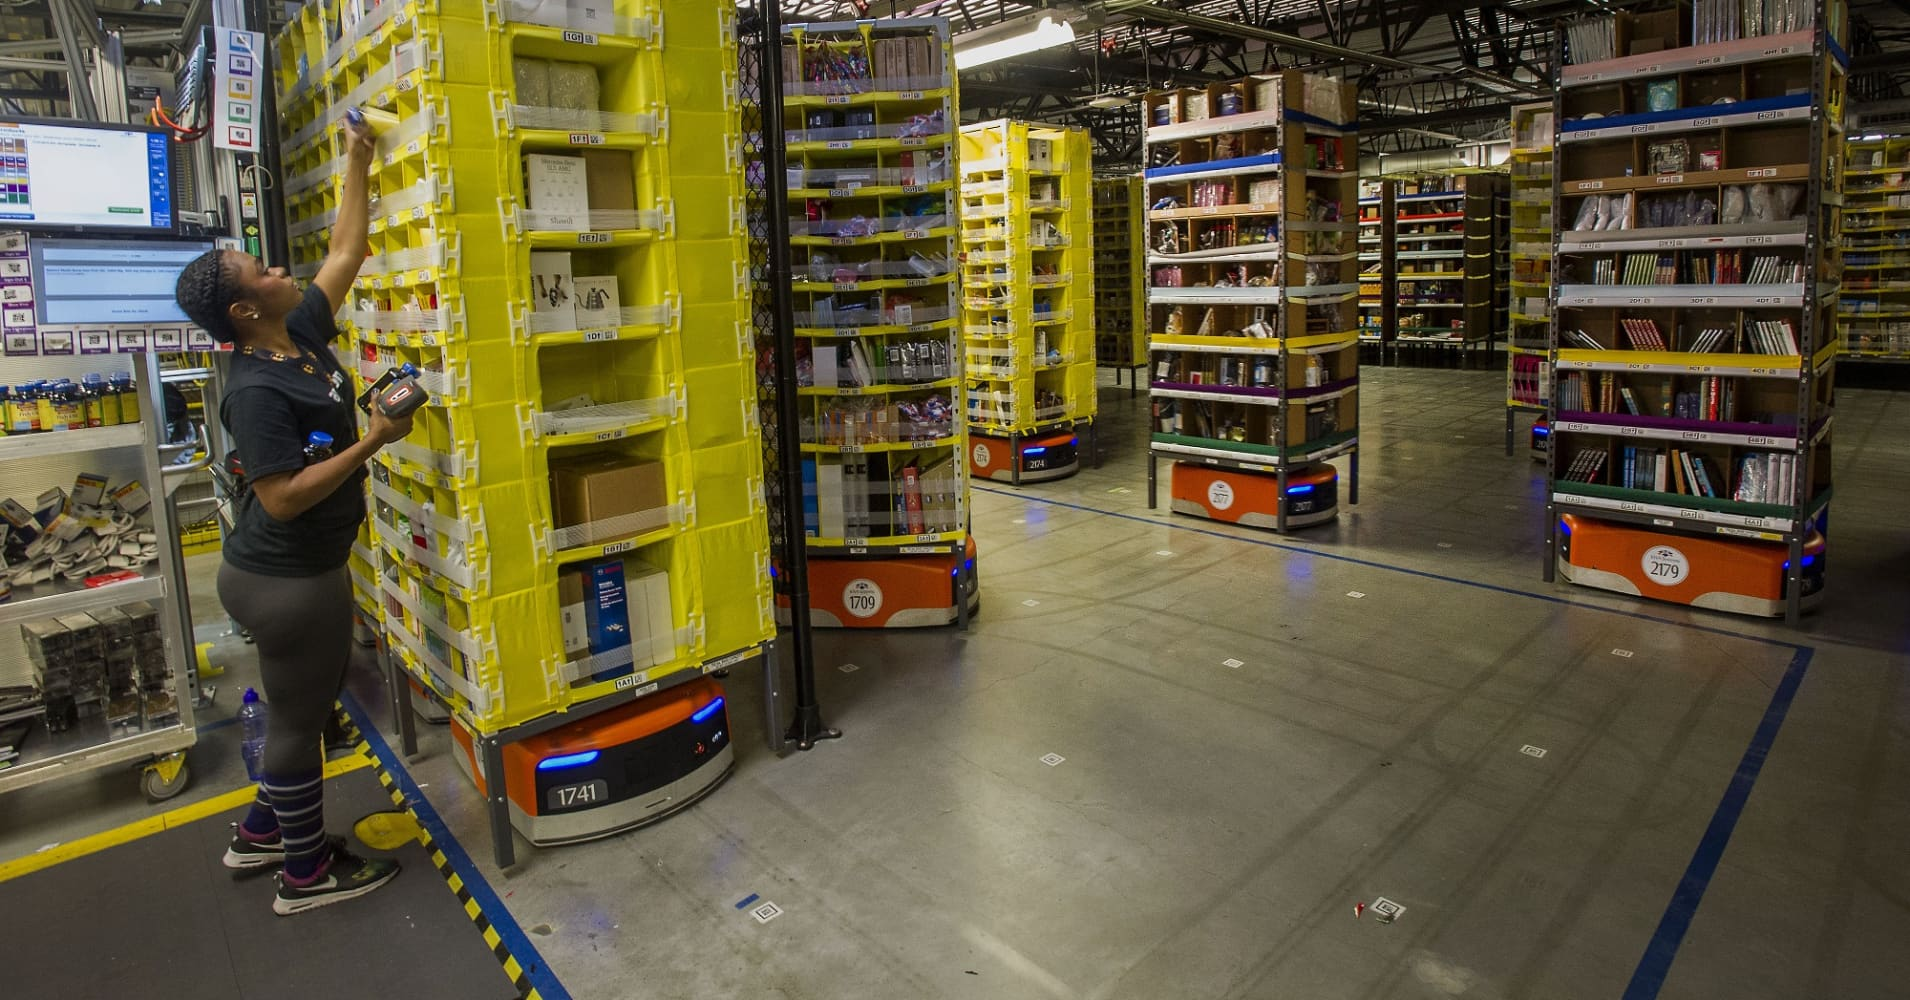 An employee packs shelves as Kiva Systems LLC robots move them to fill orders at the Amazon fulfillment center in Tracy, California.